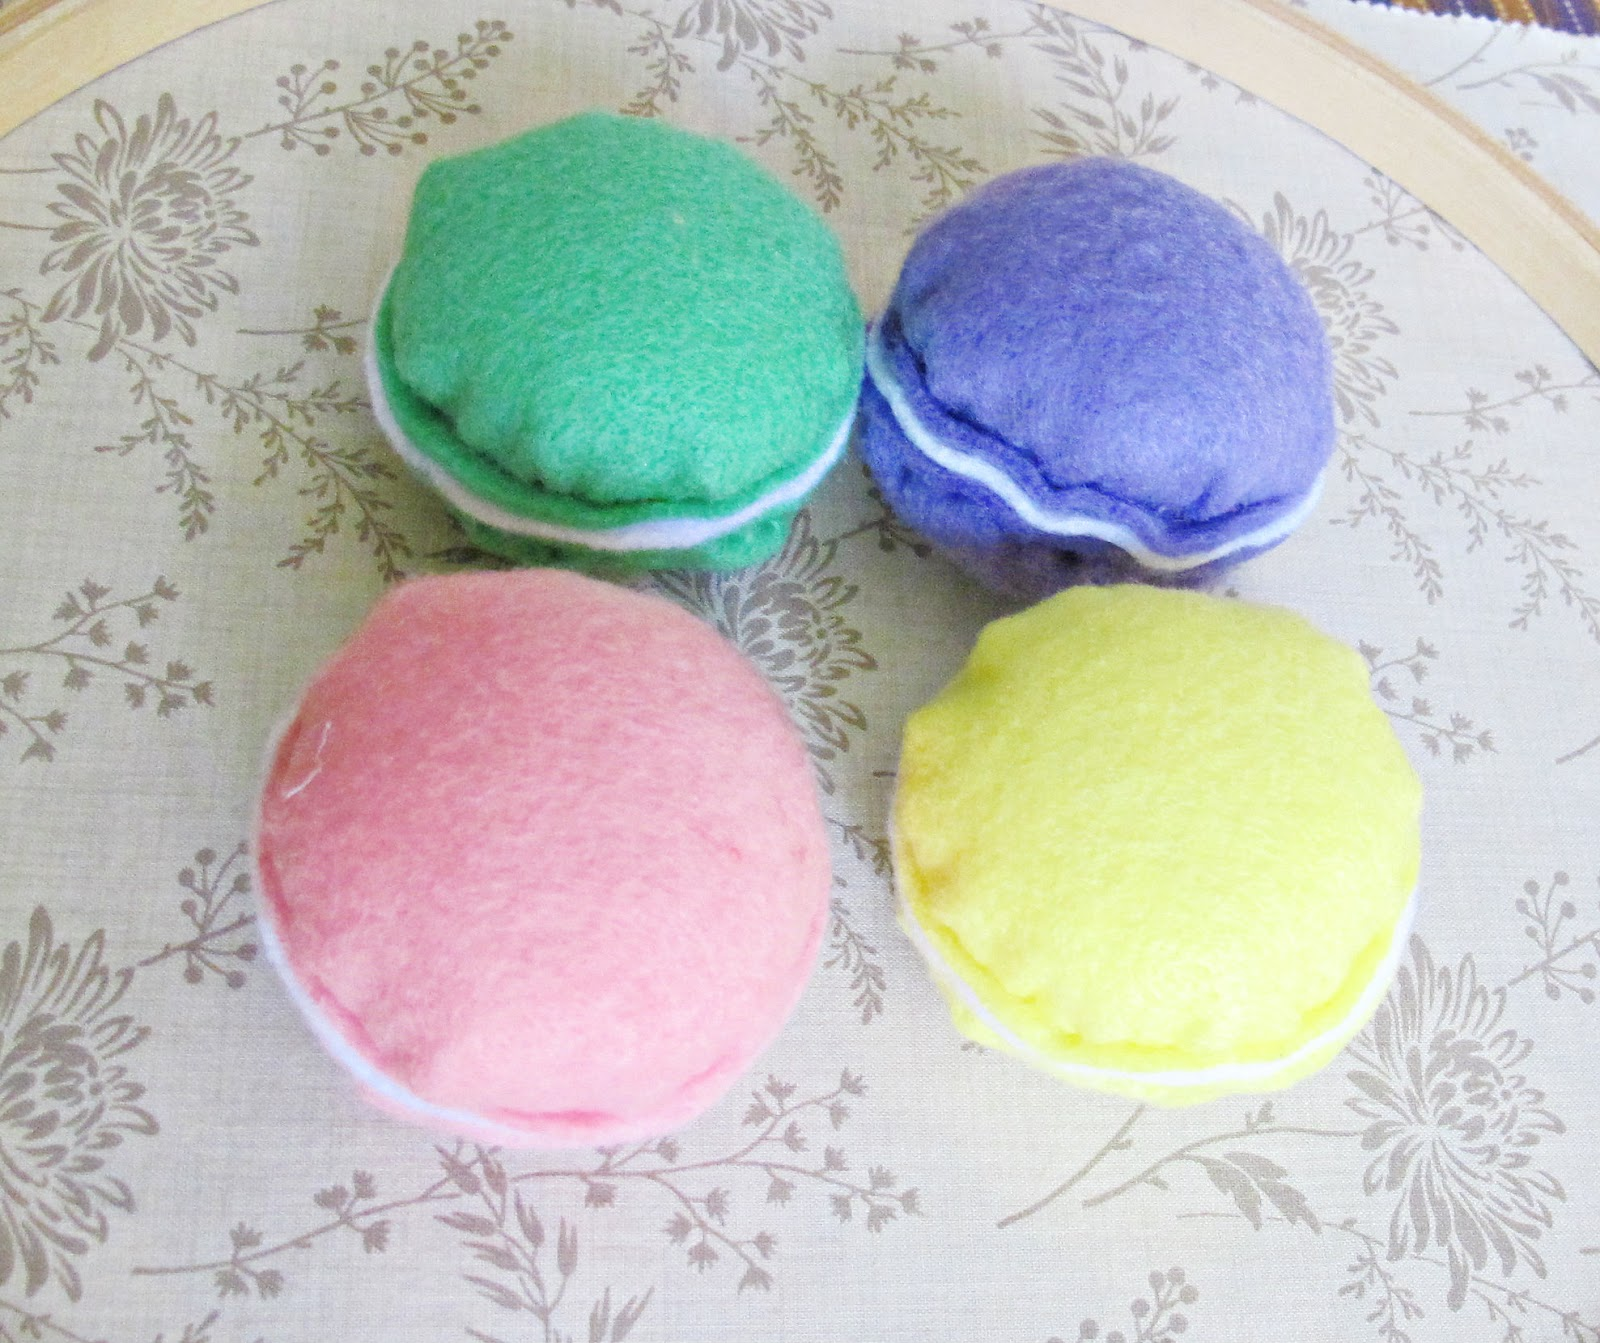 image felt food toys macarons pink green yellow purple